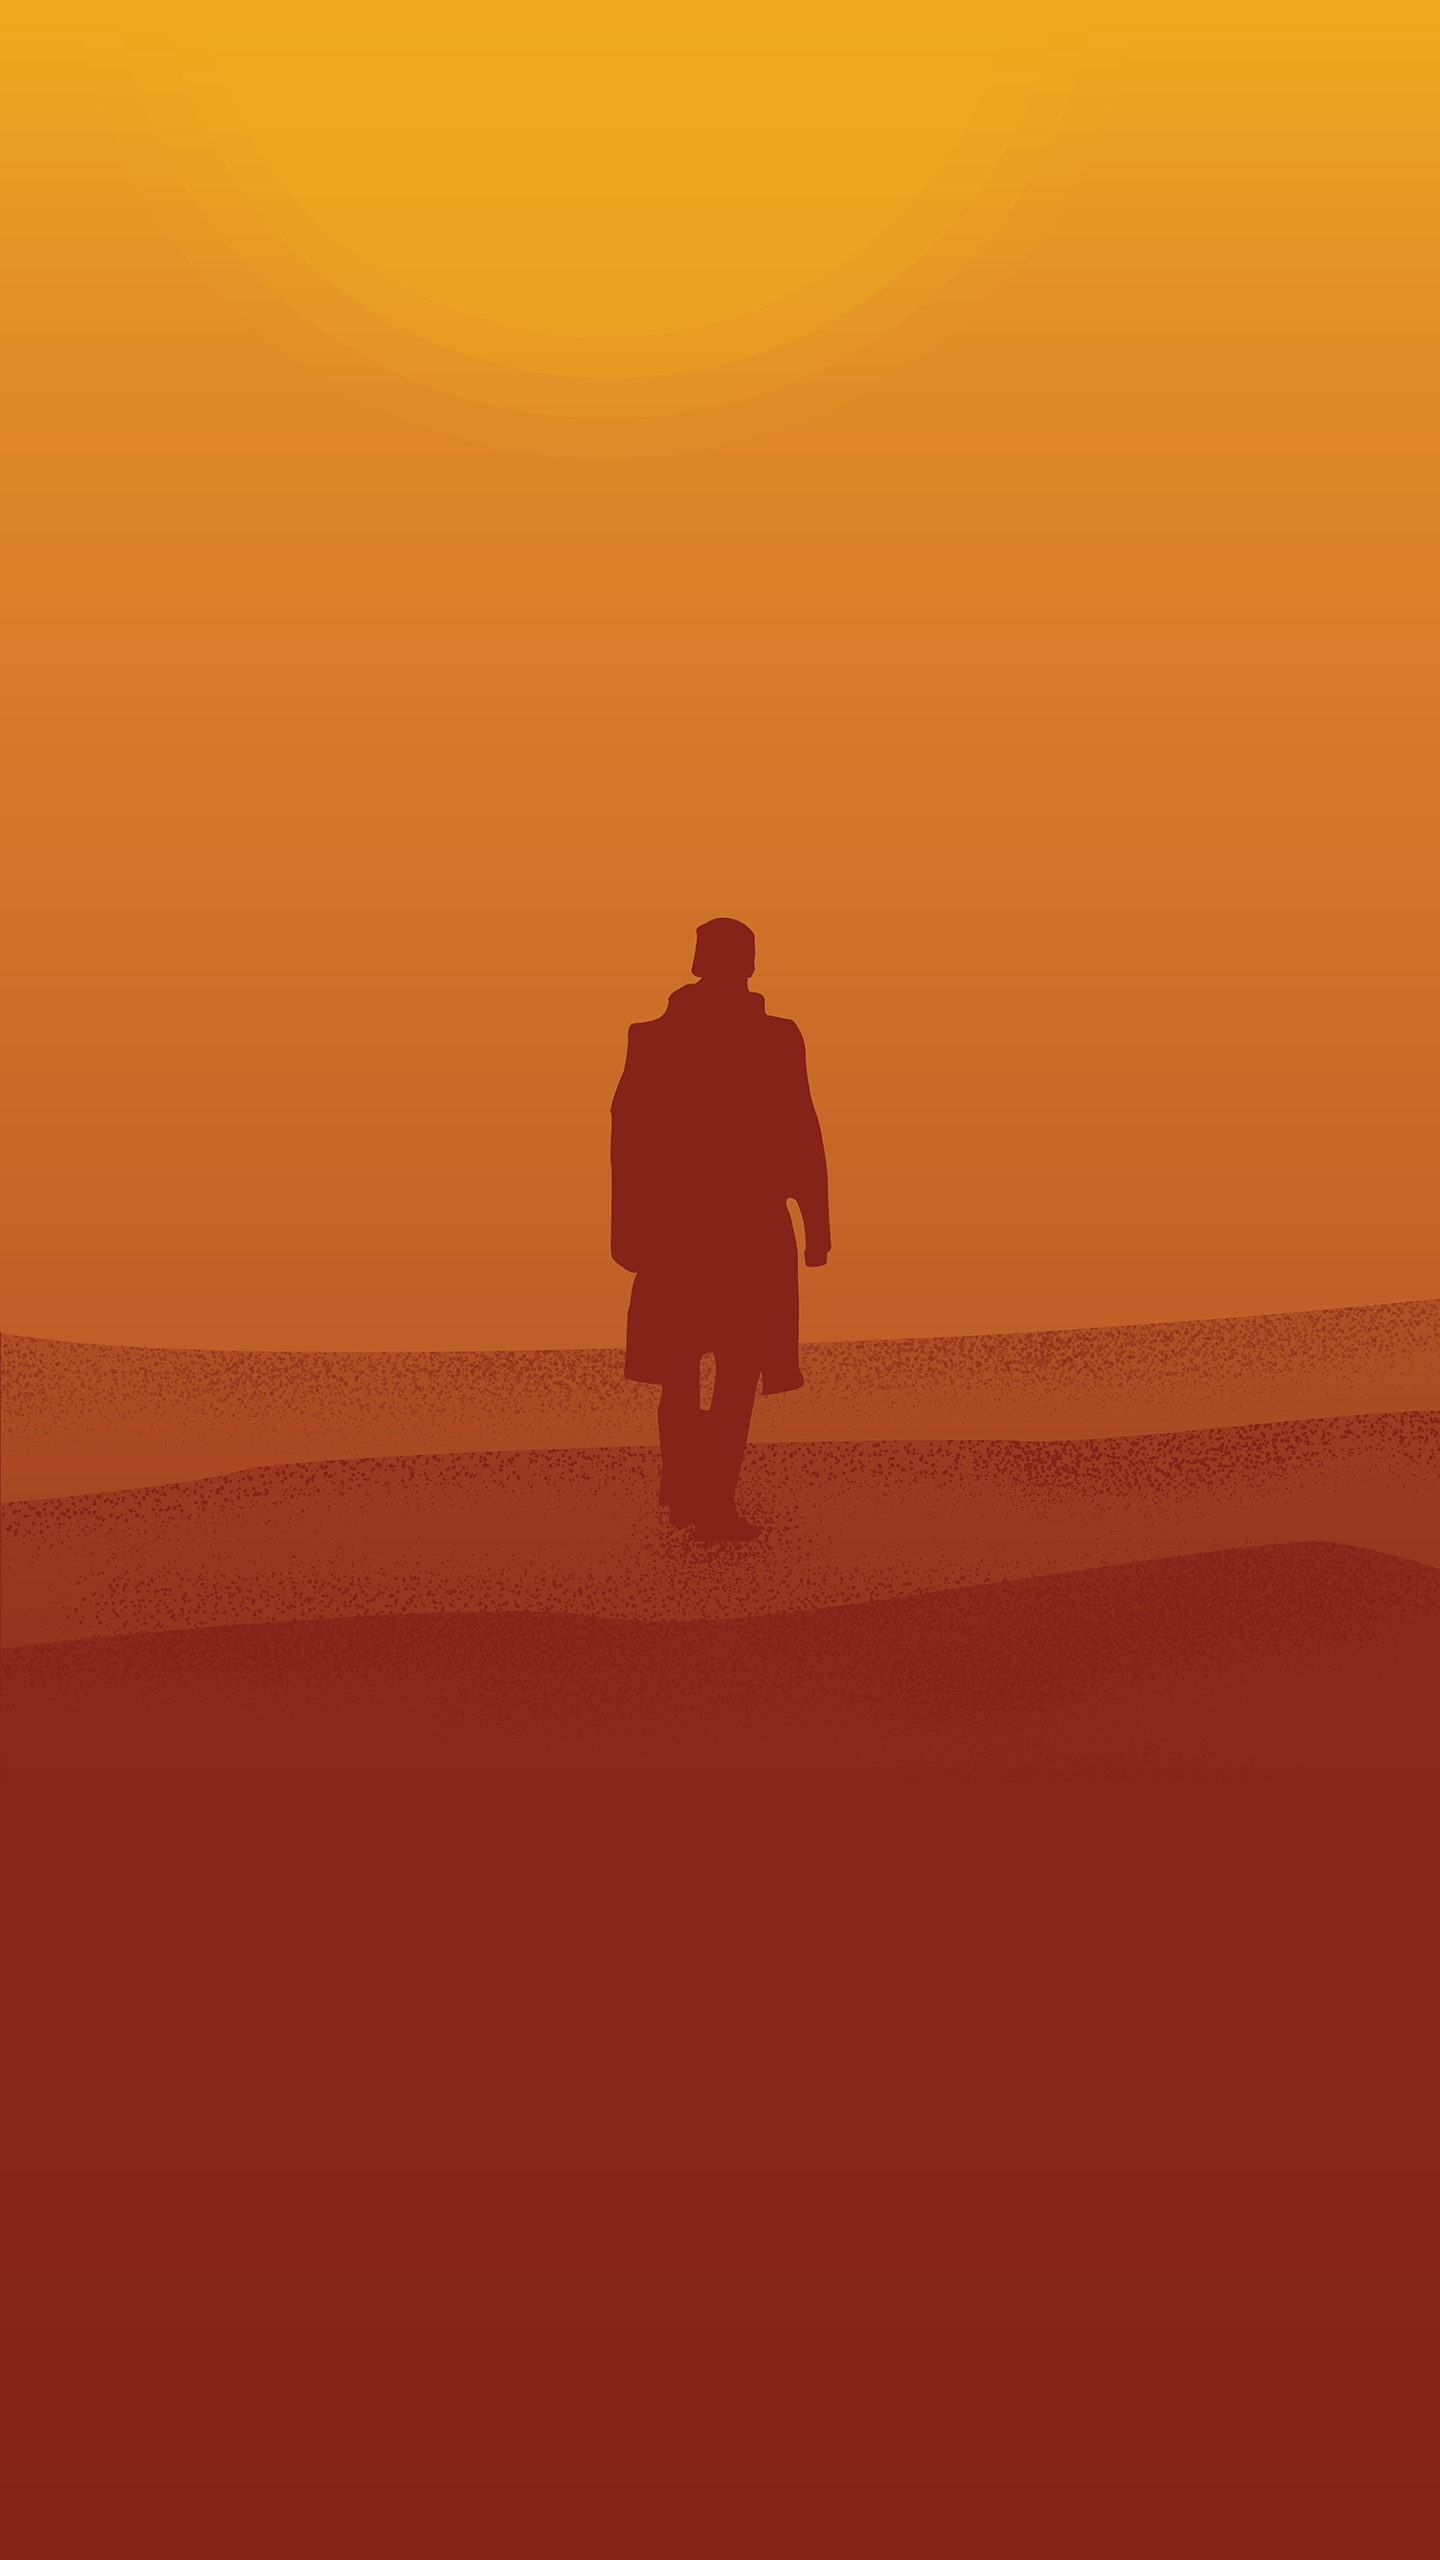 Wallpaper Iphone Love Quotes Blade Runner Minimal Iphone Wallpaper Iphone Wallpapers